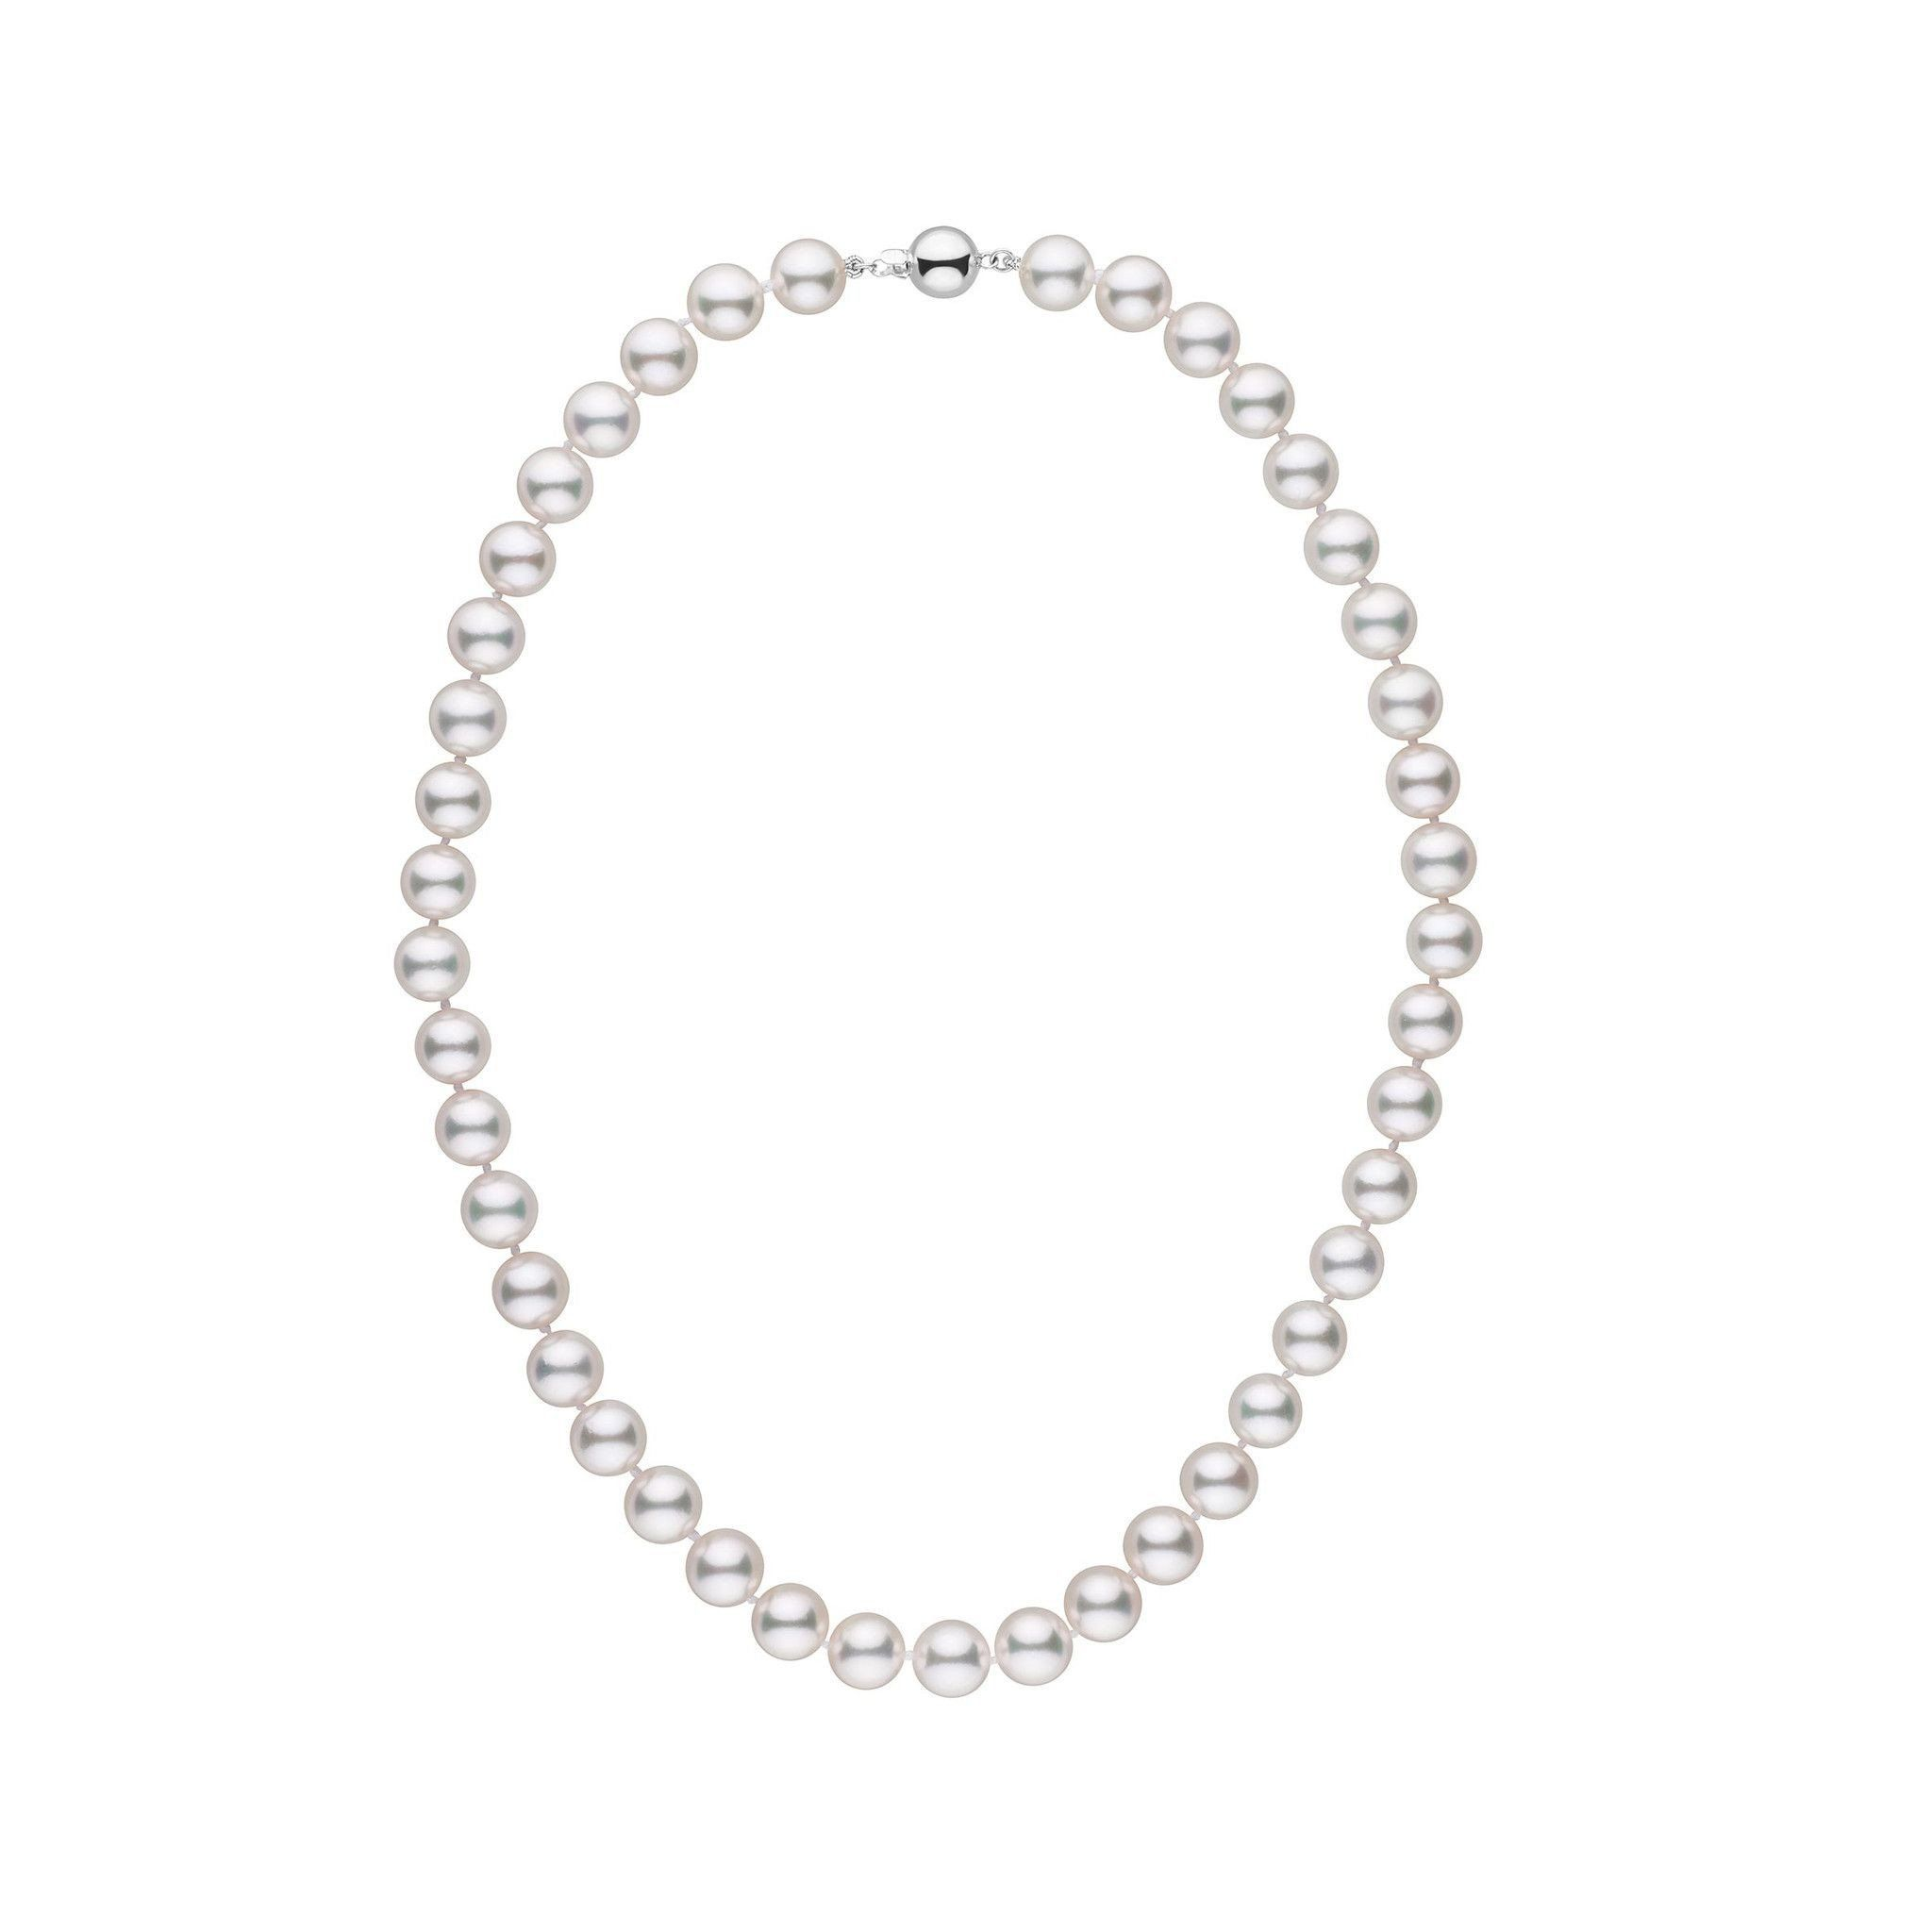 8.5-9.0 mm 16 Inch AAA White Akoya Pearl Necklace